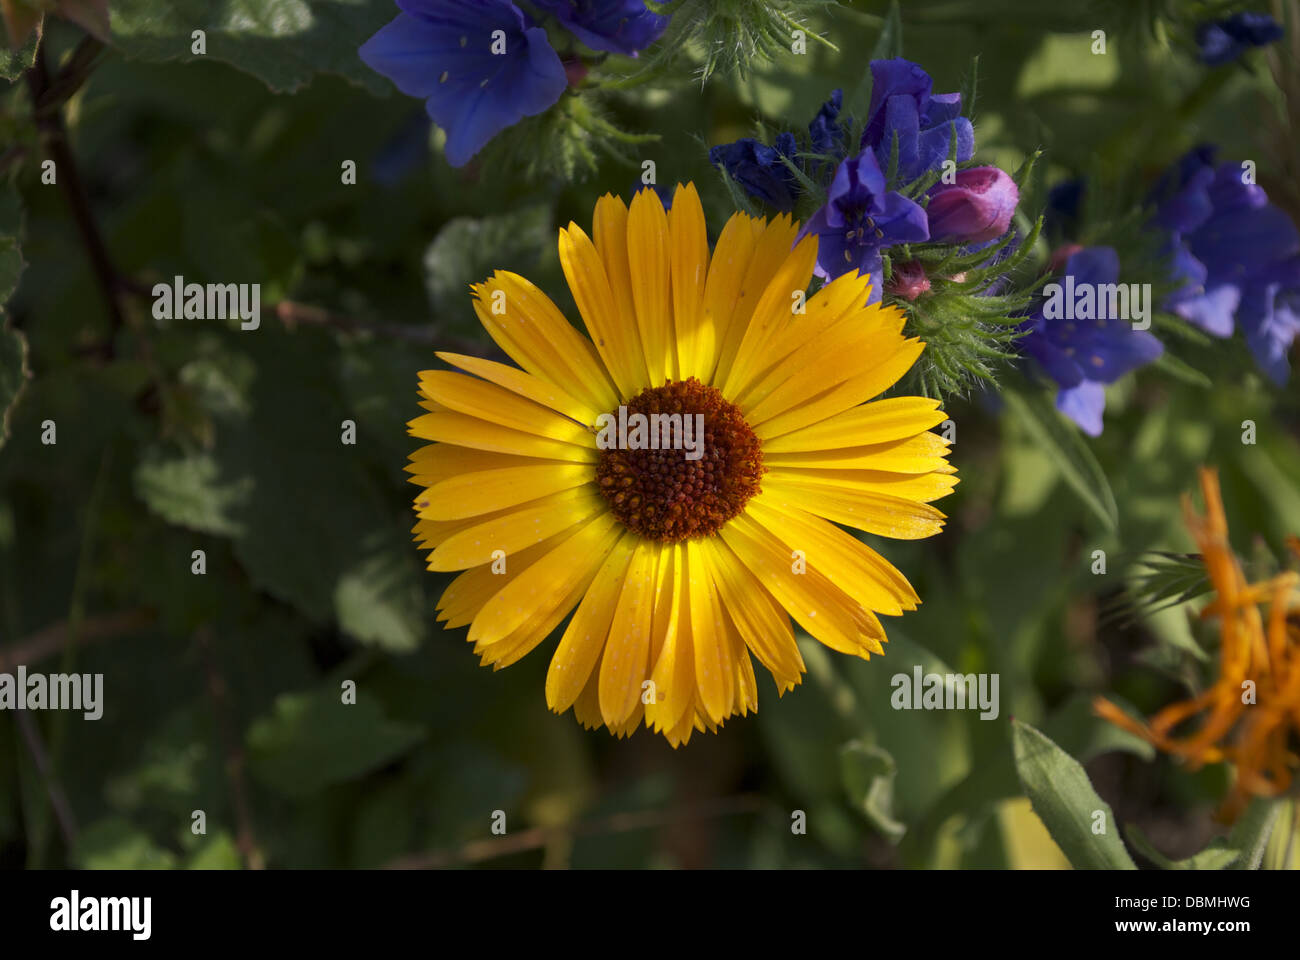 wild Flowers growing in their natural habitat many different colours and shades with leaves in the background - Stock Image